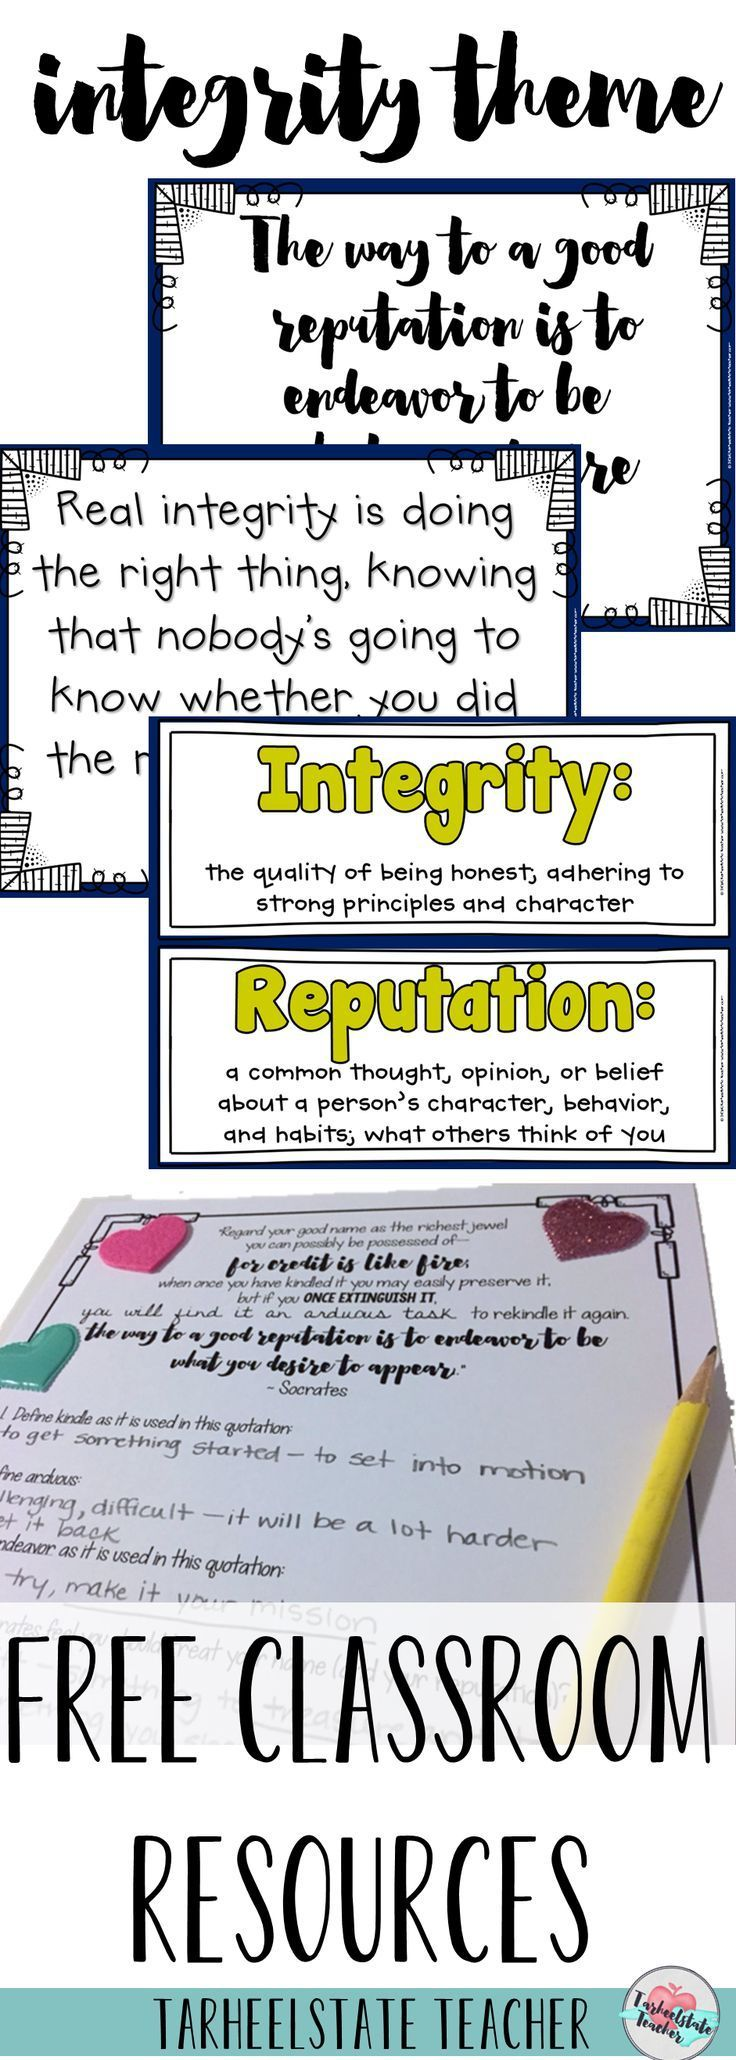 """Click for Free activities and lesson ideas for teaching your students about integrity, honesty, and protecting their reputation through quotes, quotations, read alouds/picture books, and journal pages/prompts. """"The way to a good reputation is to endeavor"""